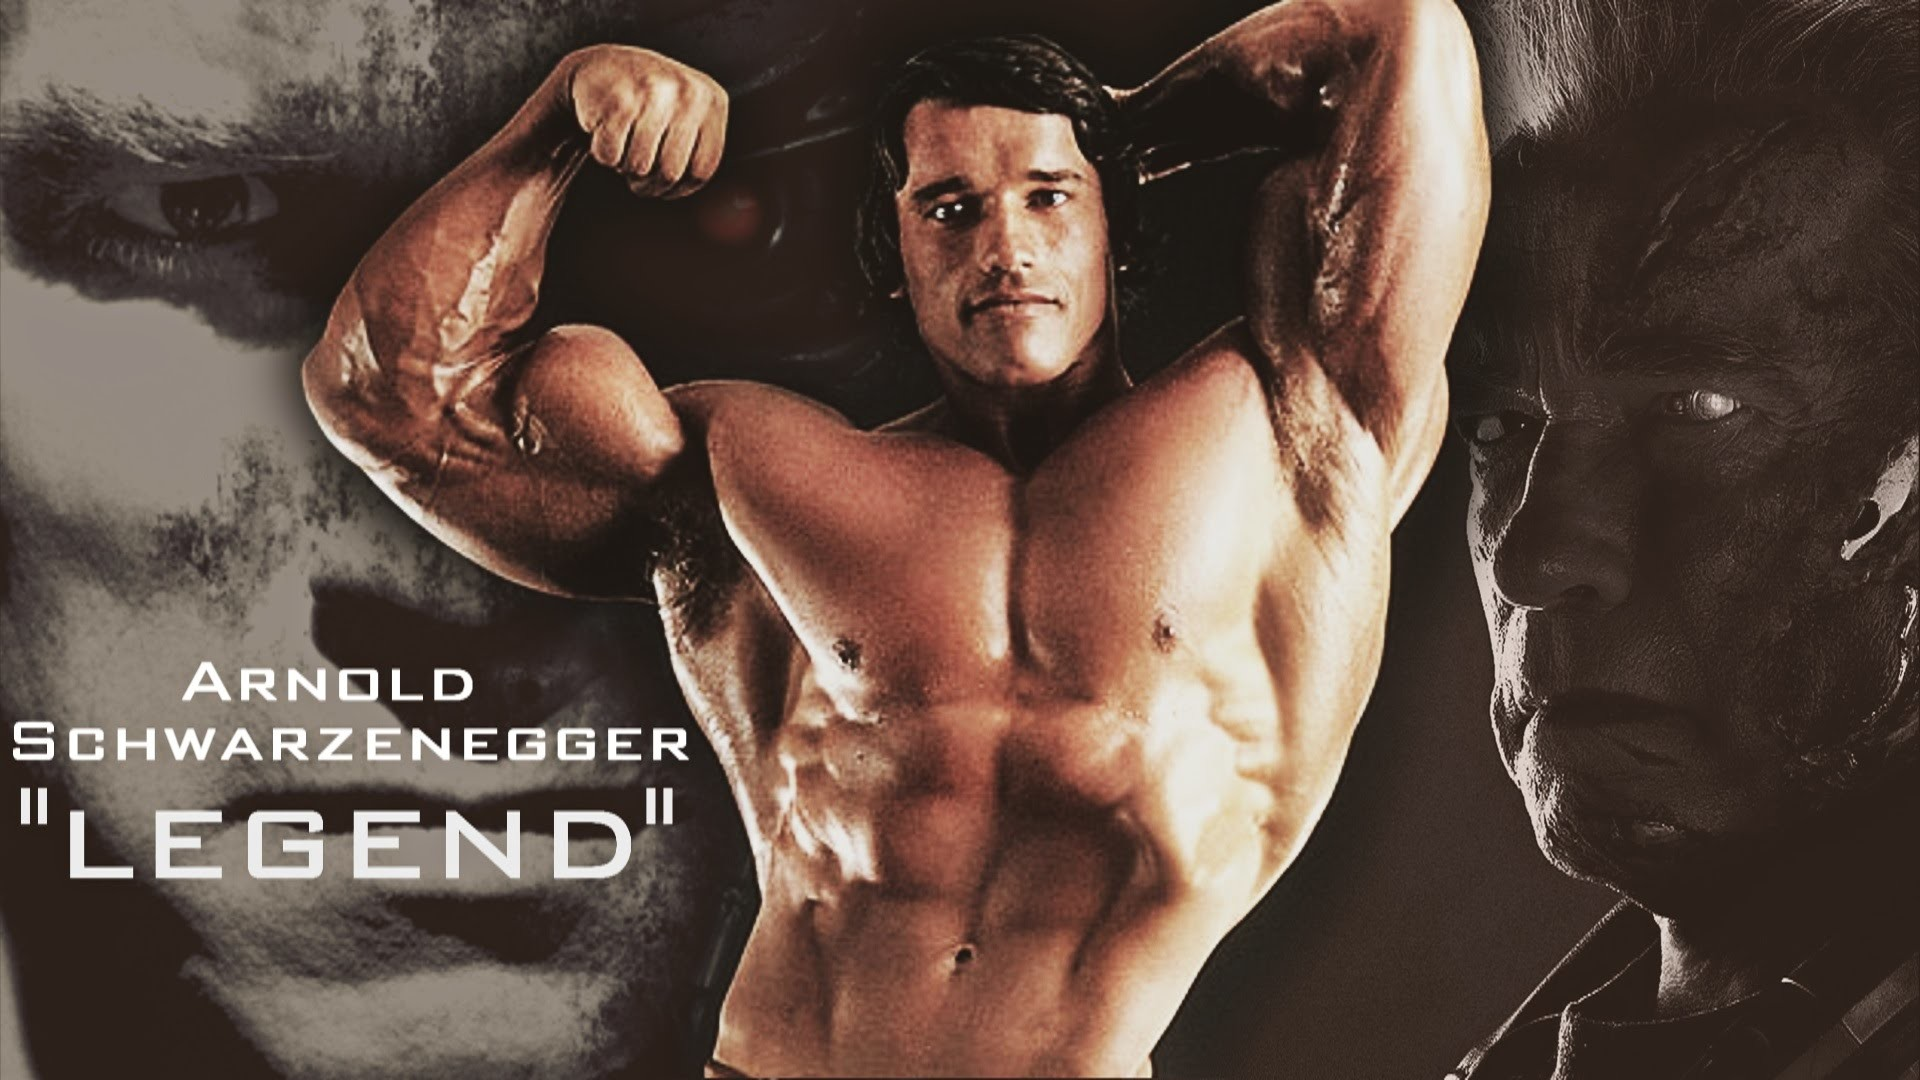 Arnold schwarzenegger bodybuilding wallpapers posters and pictures bodybuilding motivation arnold voltagebd Image collections